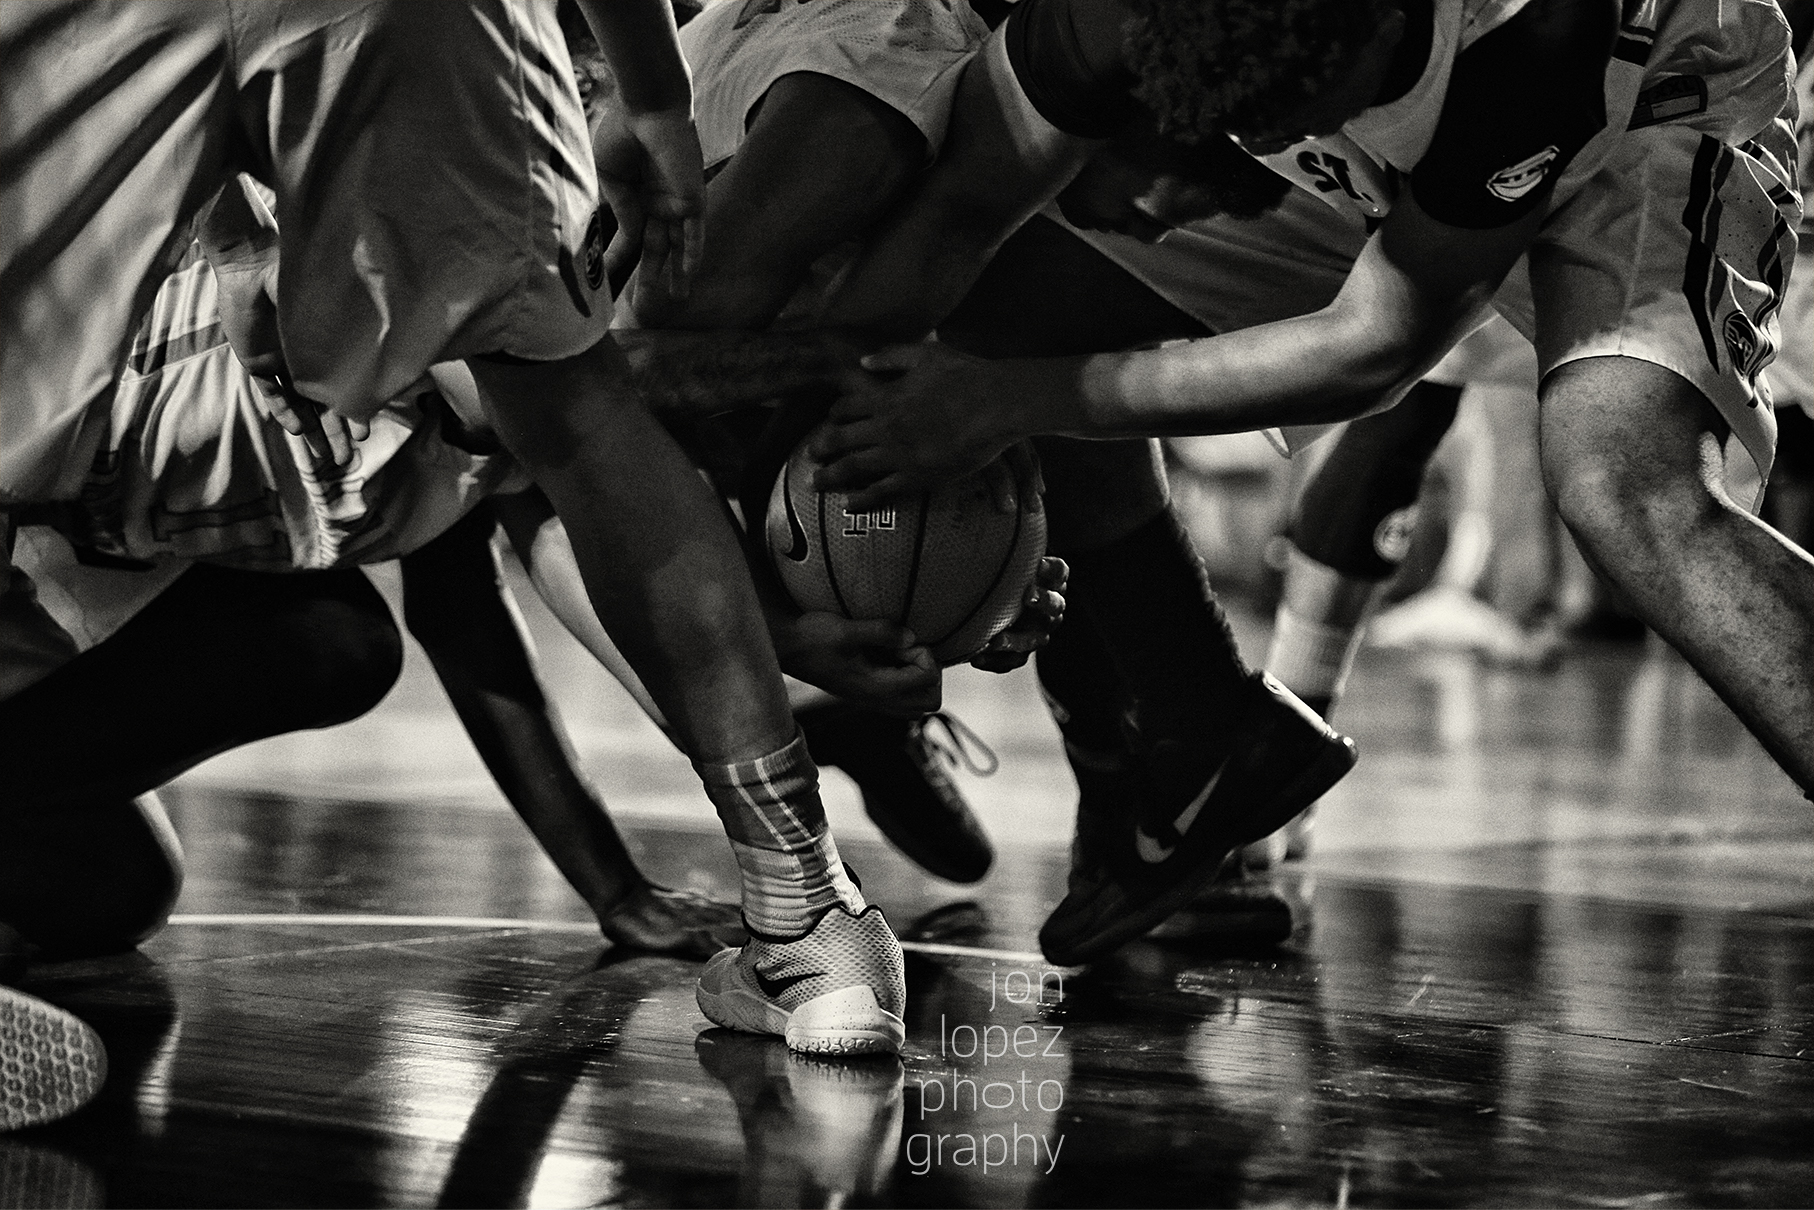 Players battle for possession during session one of the EYBL at the Brooklyn Cruise Terminal. I loved the dramatic lighting in this shot.